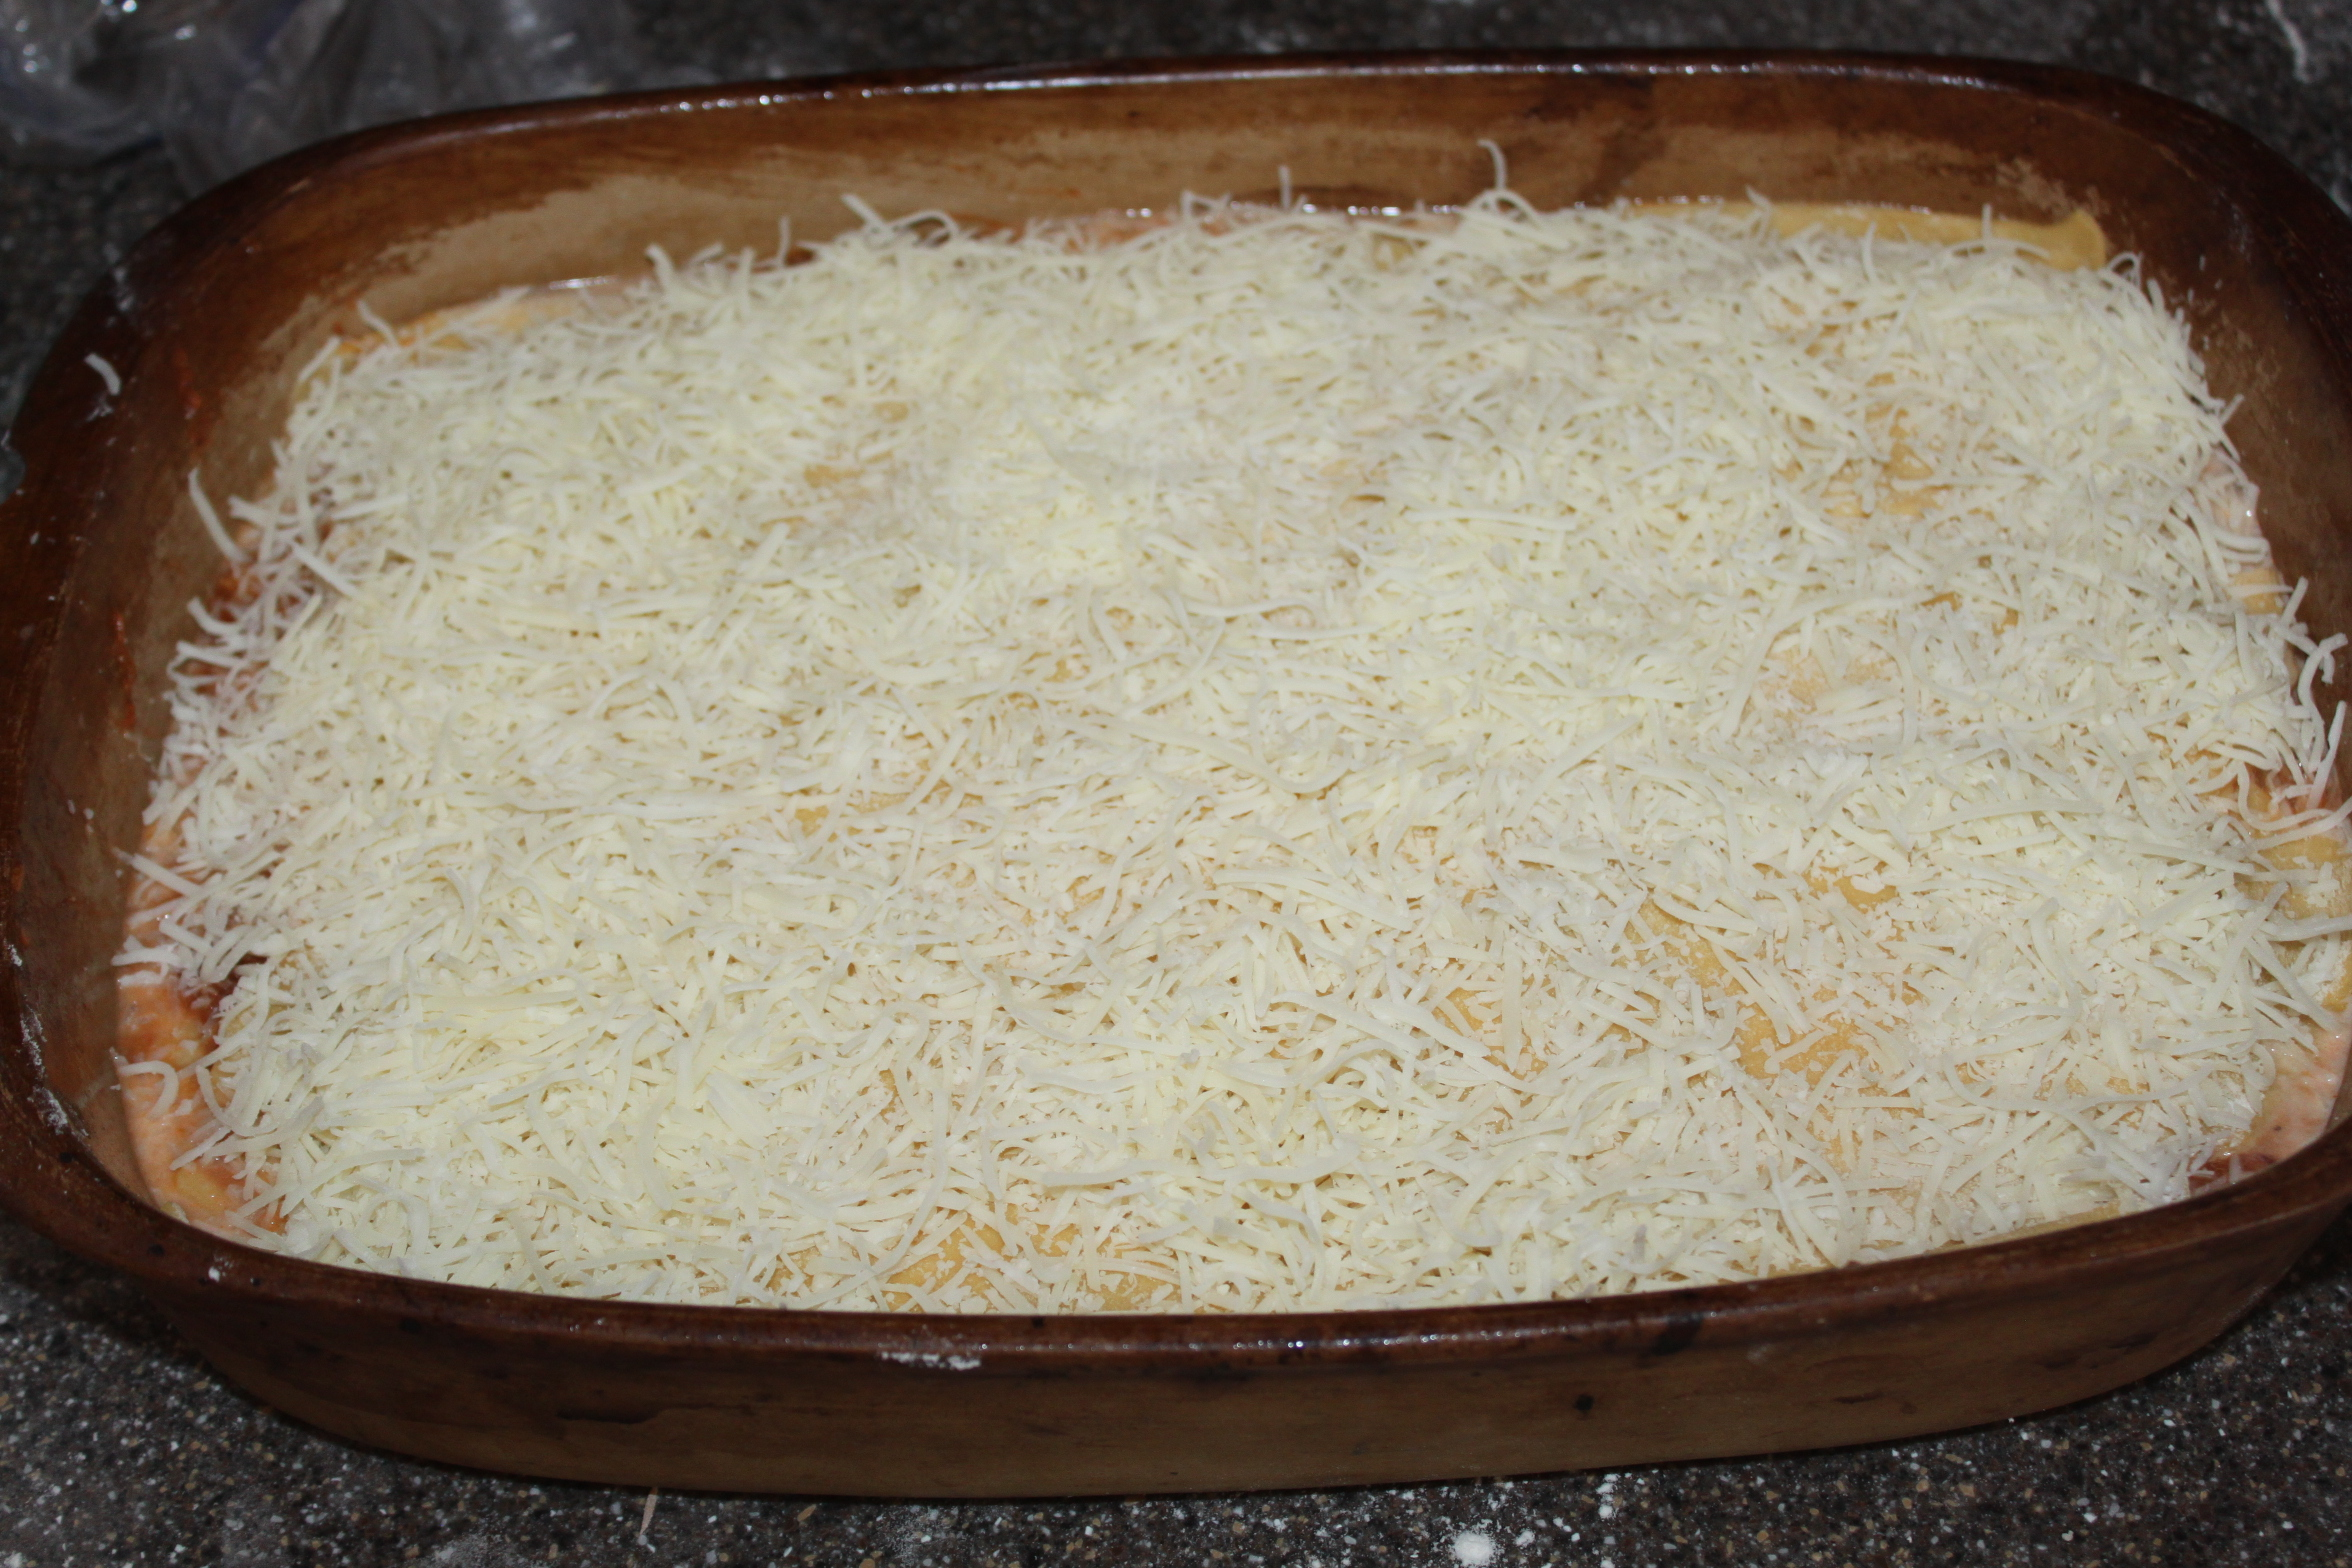 Top layer of cheese - can you ever have too much cheese?